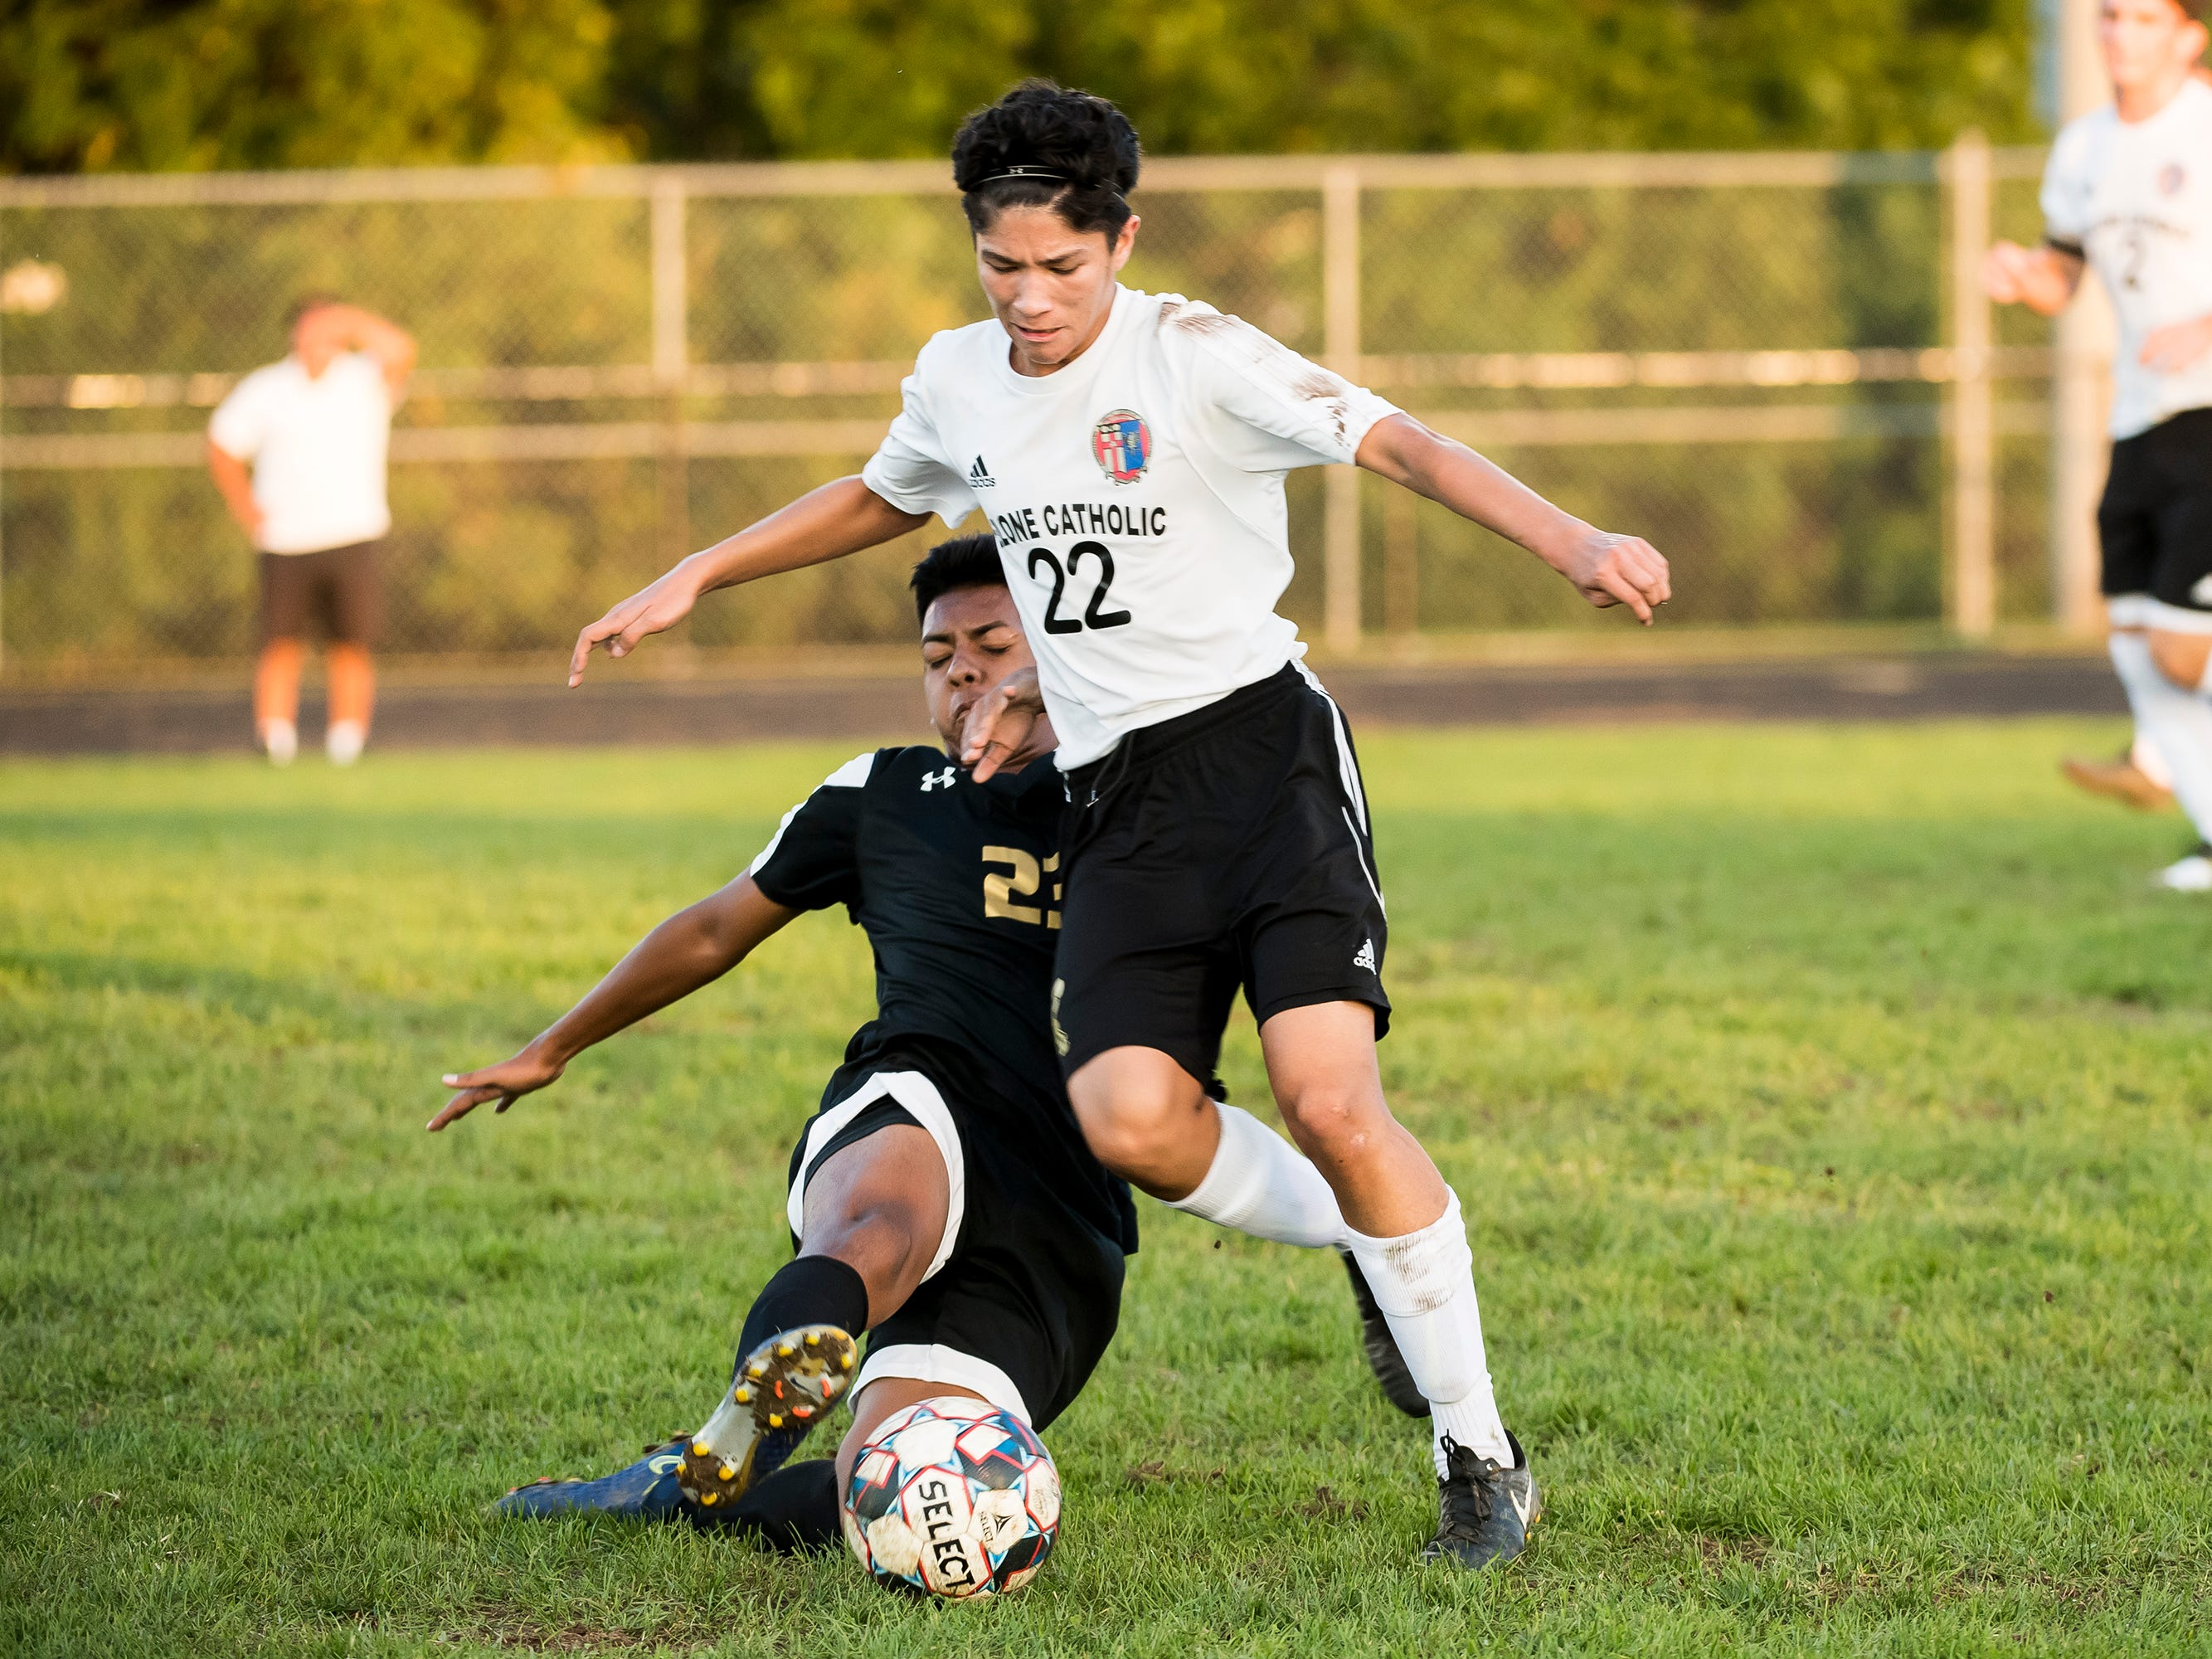 Biglerville's Carlos Castillo slides to hit the ball away from Delone Catholic's Patrick O'Donnell (22) on Wednesday, October 3, 2018. The Canners won 3-0.